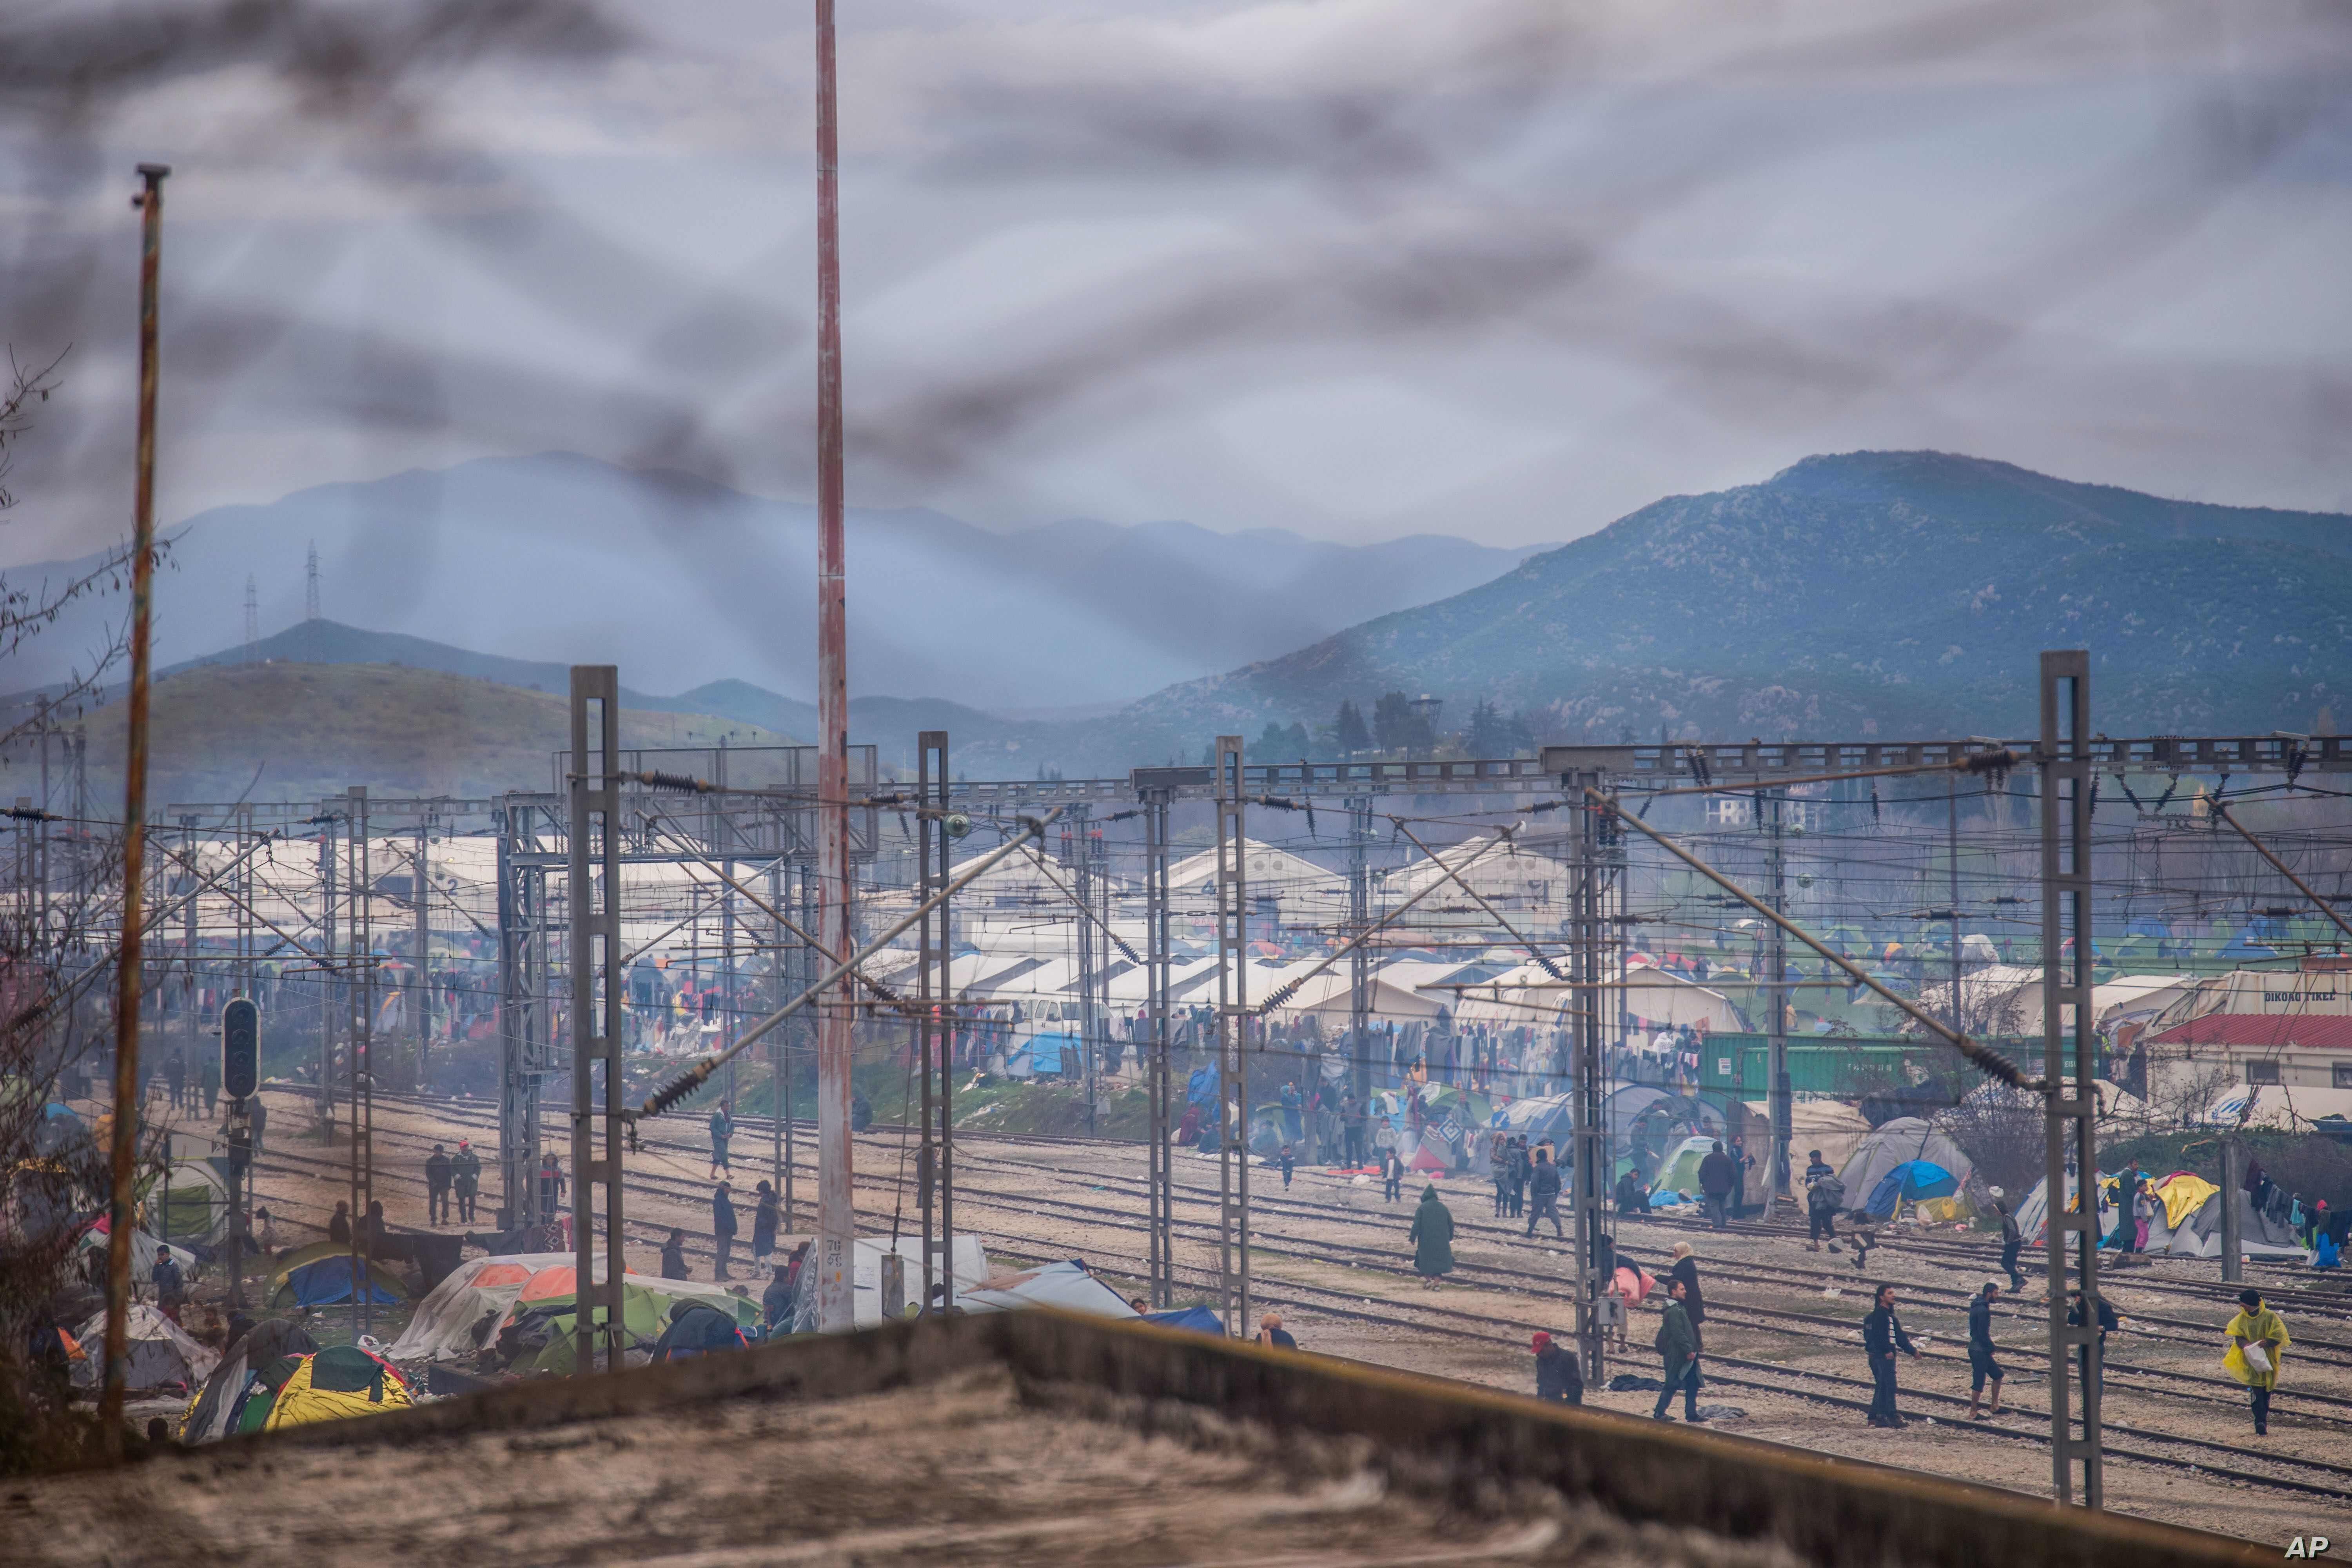 The camp in Idomeni, photographed from the Greek side of the border between Greece and Macedonia, March 10, 2016.